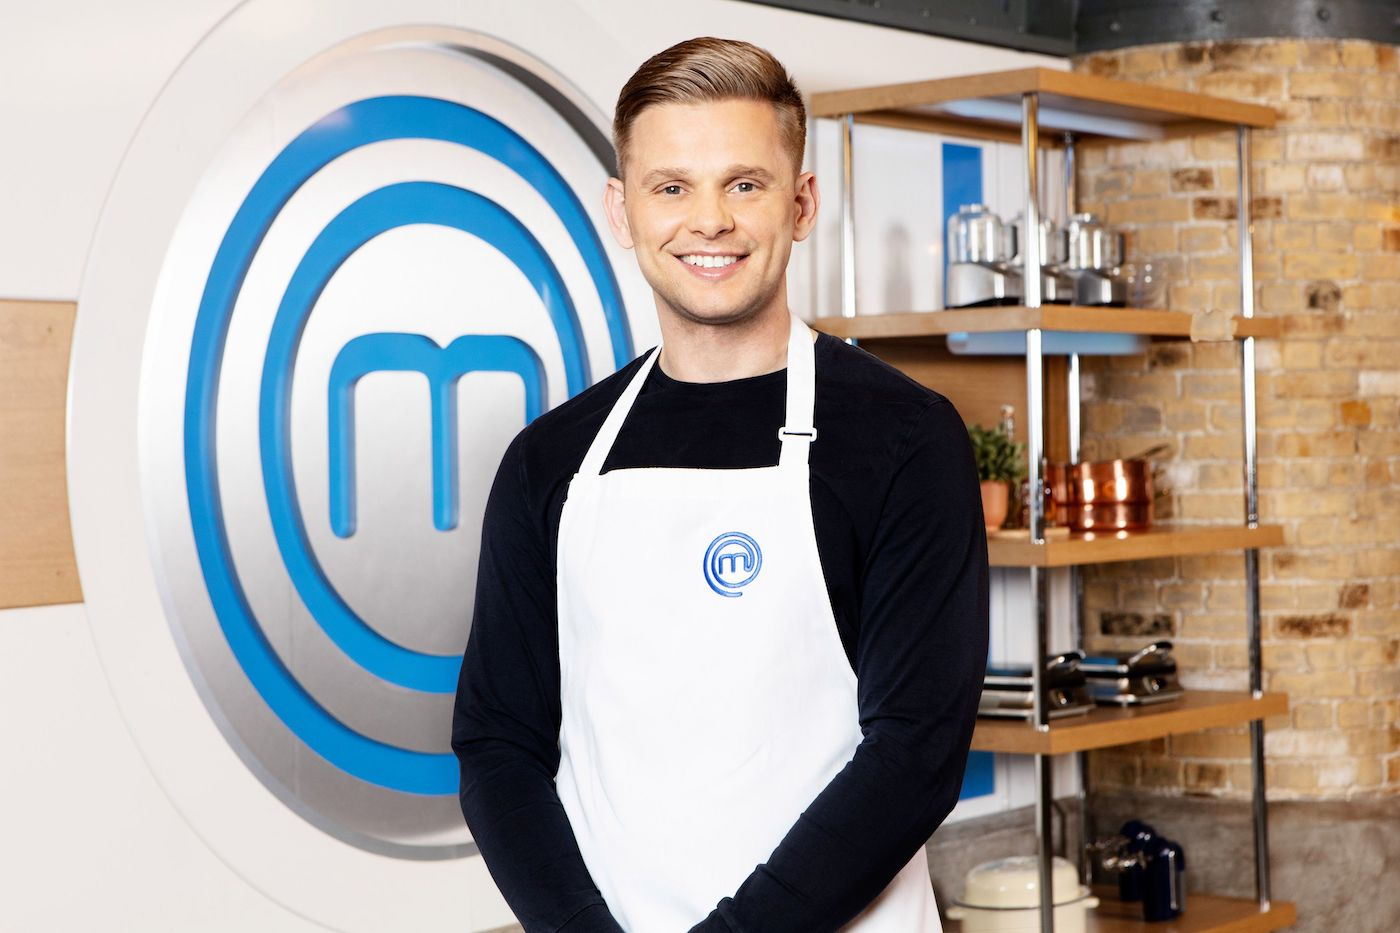 Jeff Brazier Celebrity MasterChef (Credit: BBC)